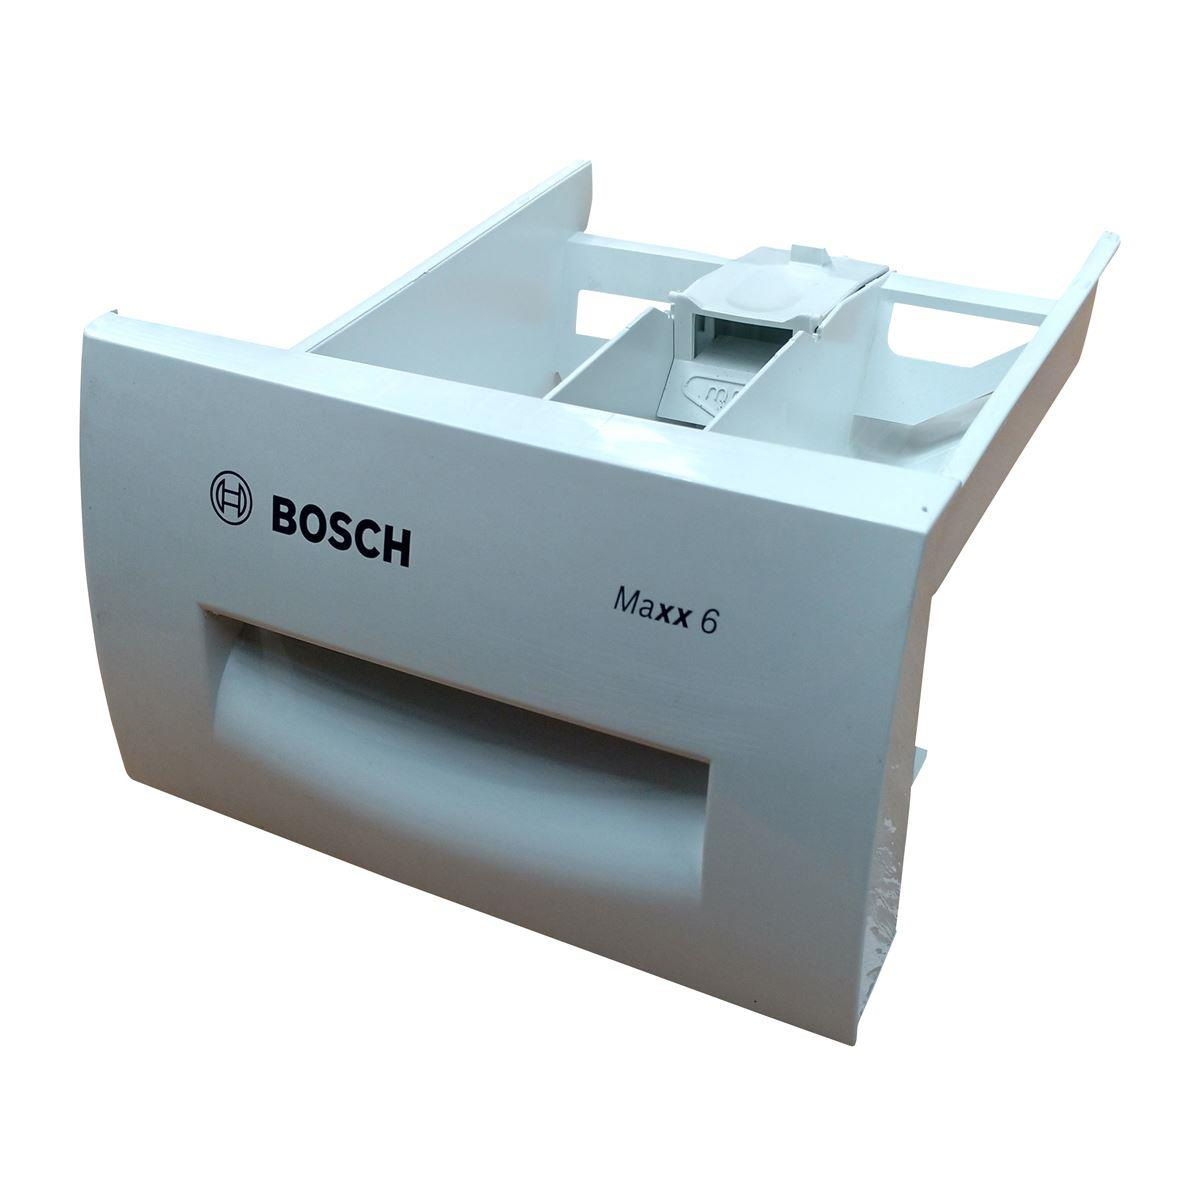 bosch detergent soap drawer for maxx 6 white online store. Black Bedroom Furniture Sets. Home Design Ideas